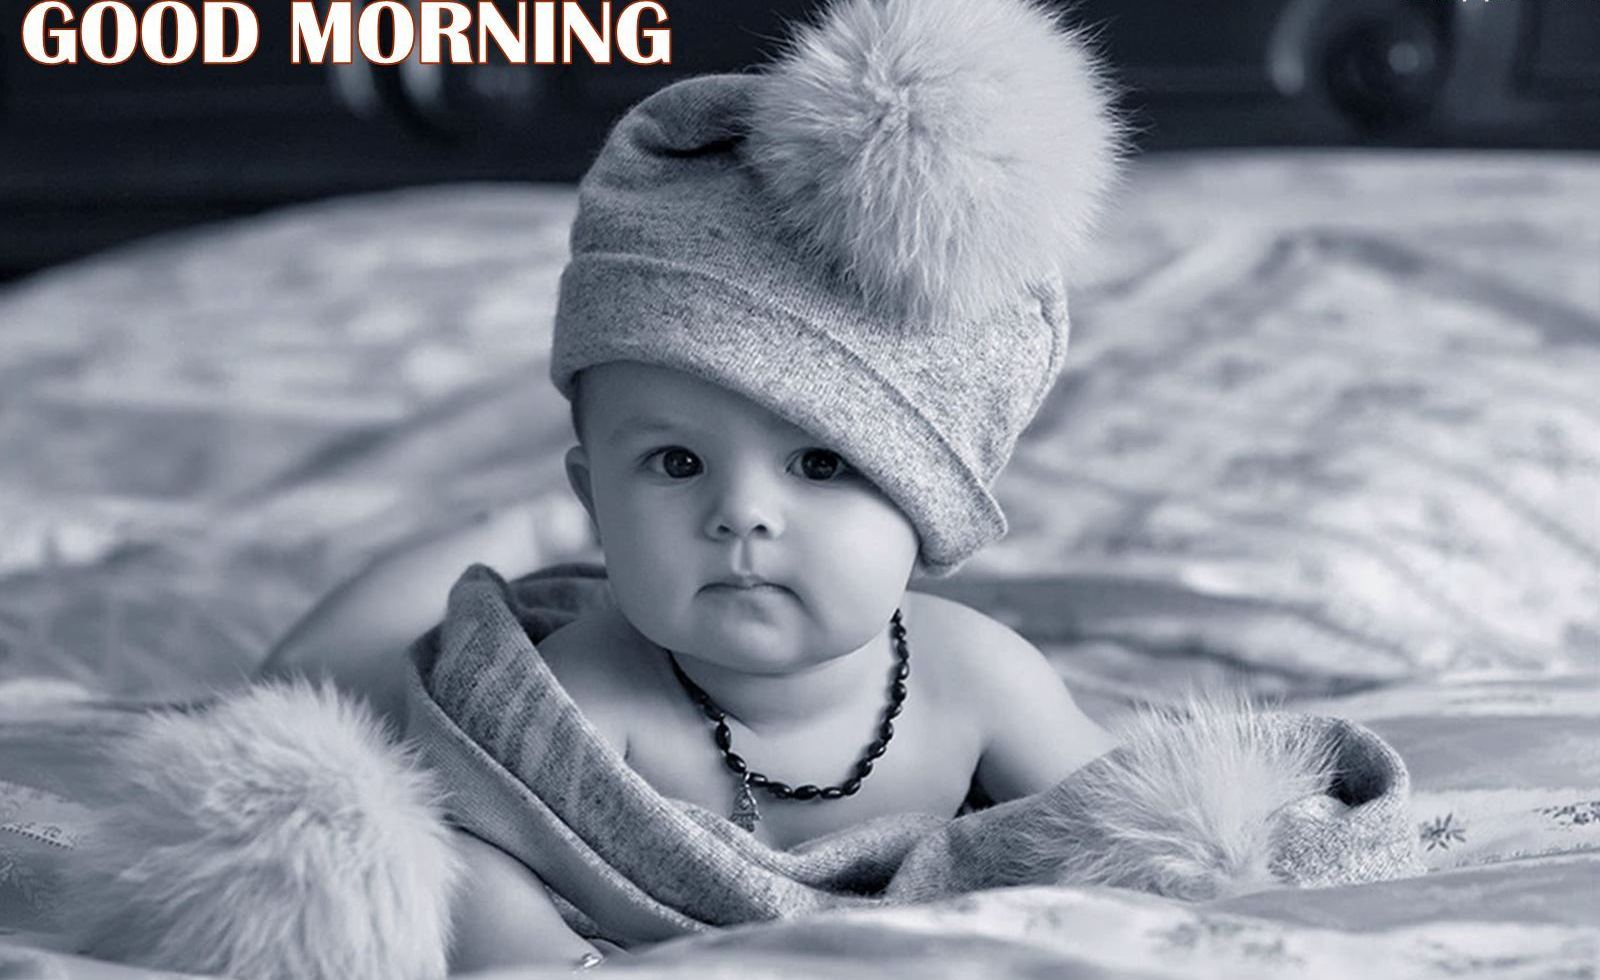 Good Morning With Sweet Little Baby